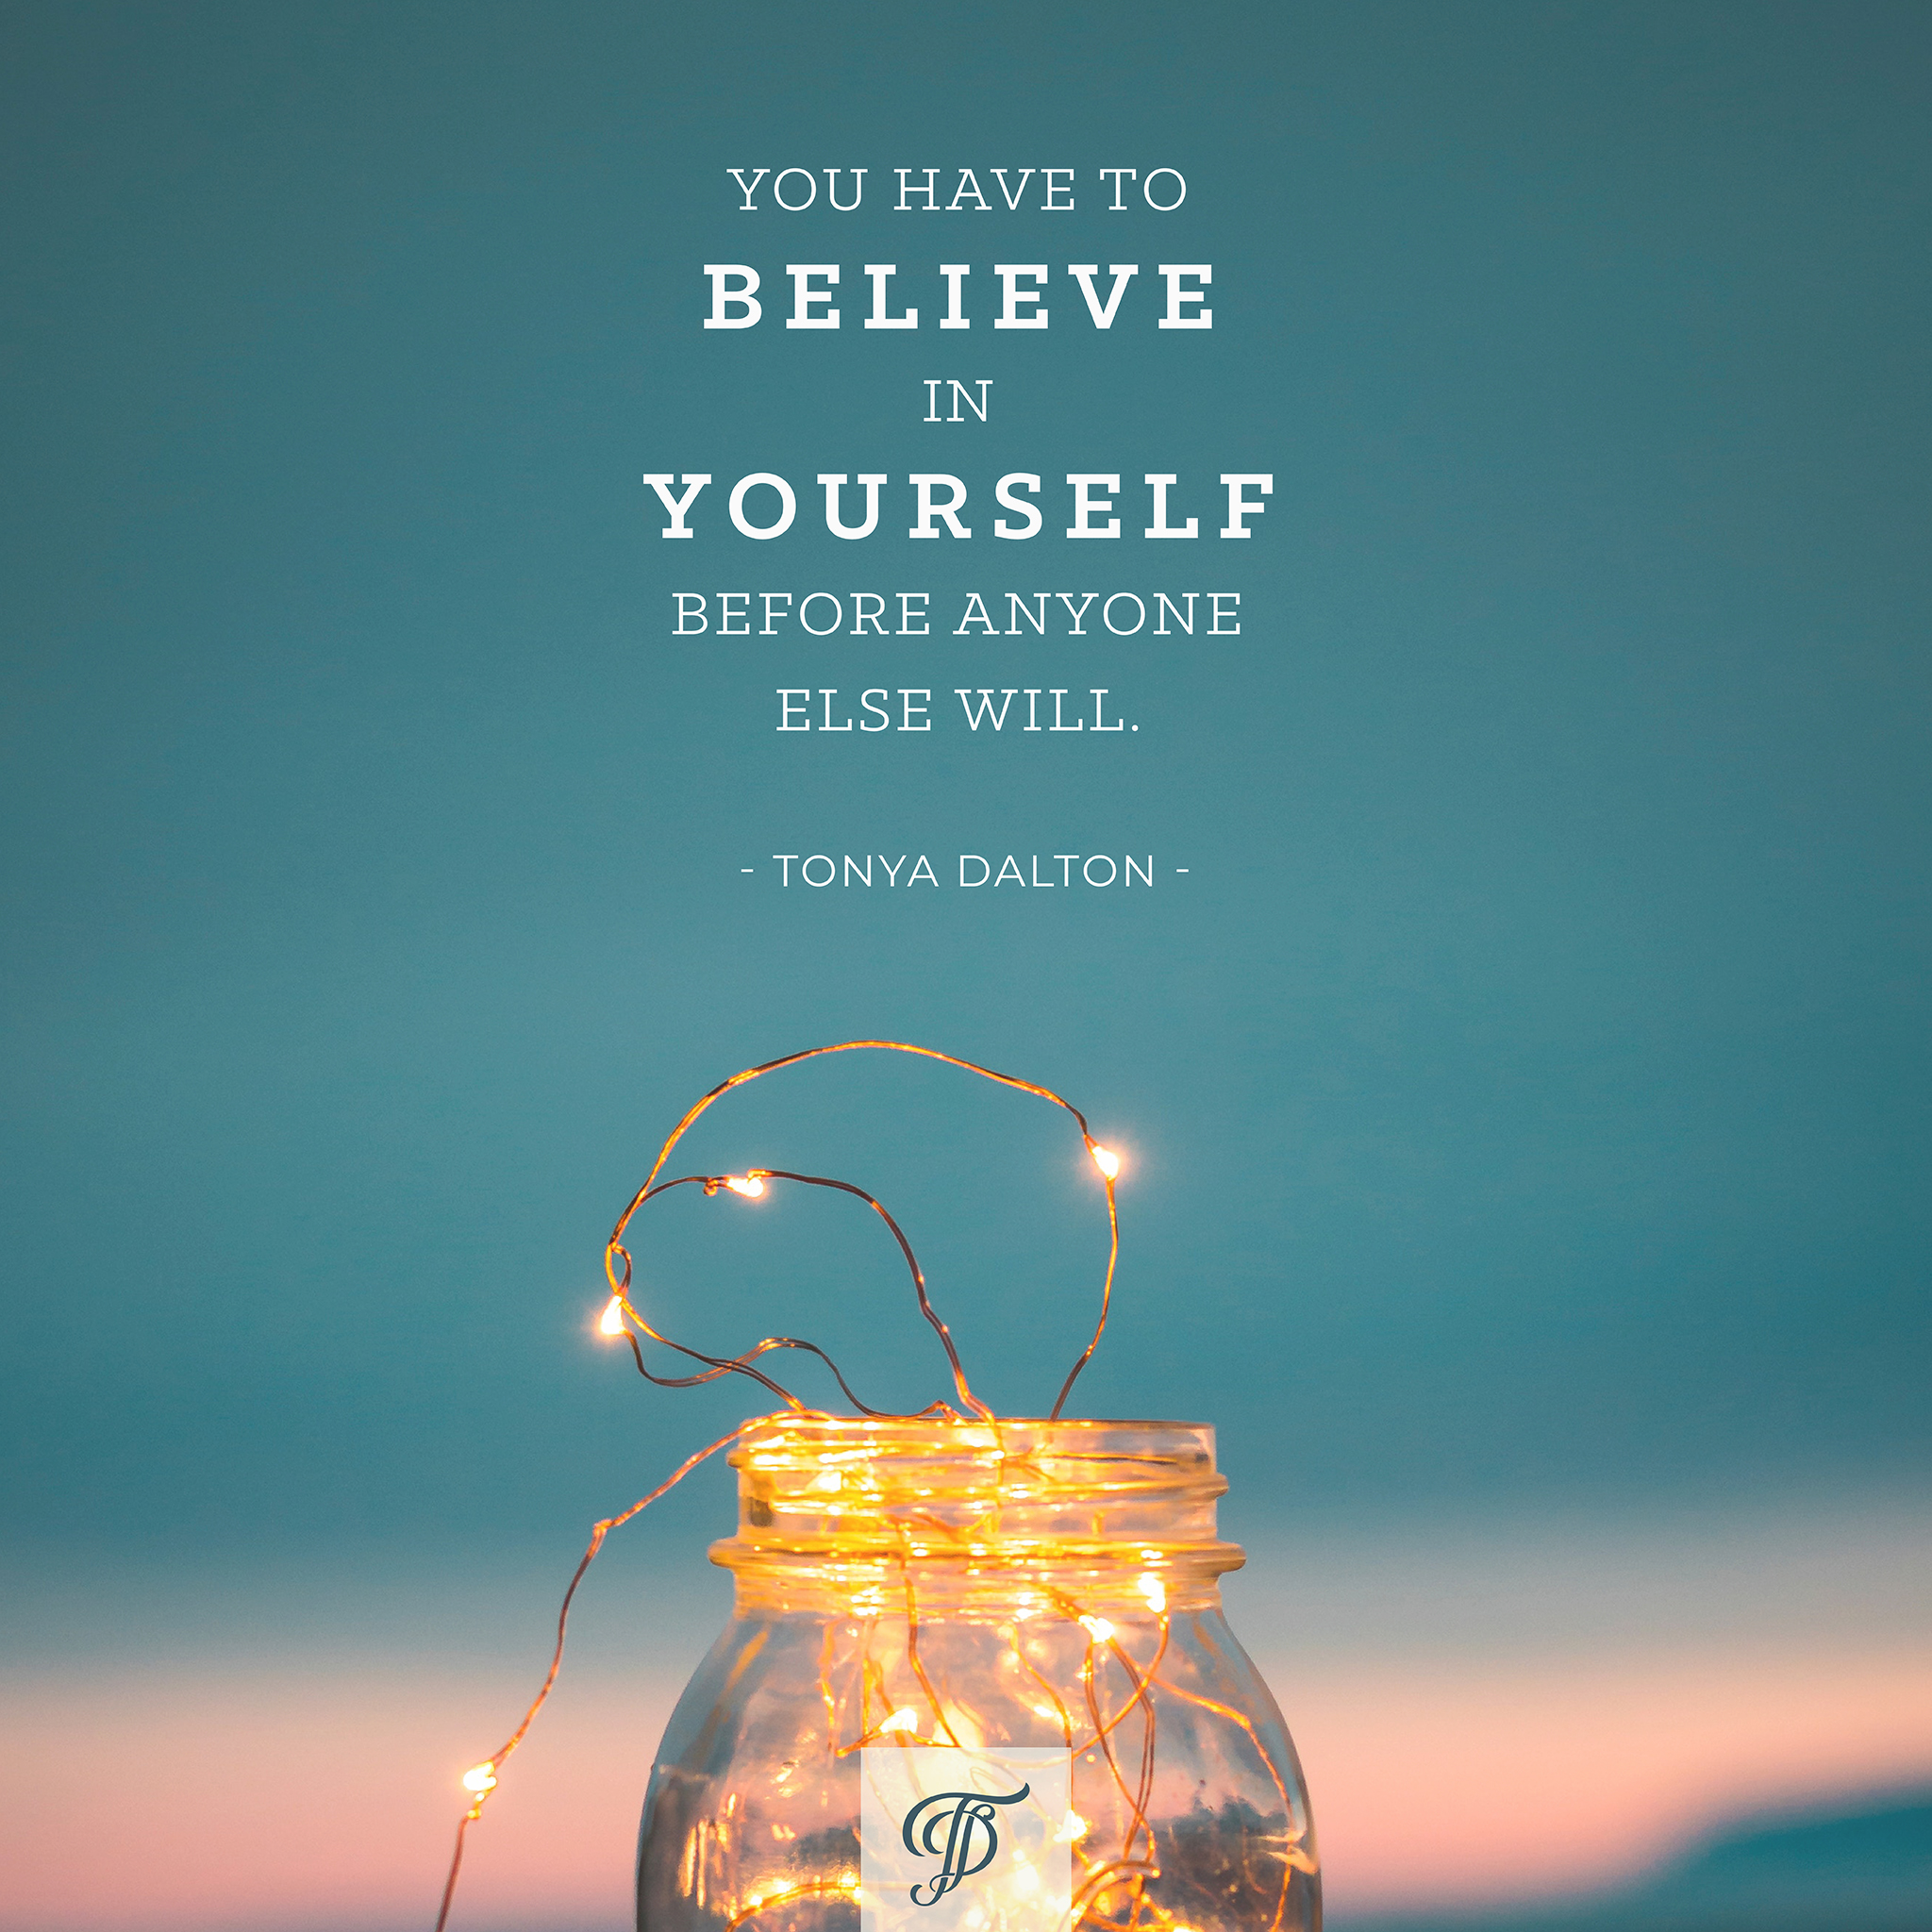 108-productivity-paradox-you-have-to-believe-in-yourself-before-anyone-else-will-tonya-dalton.jpg